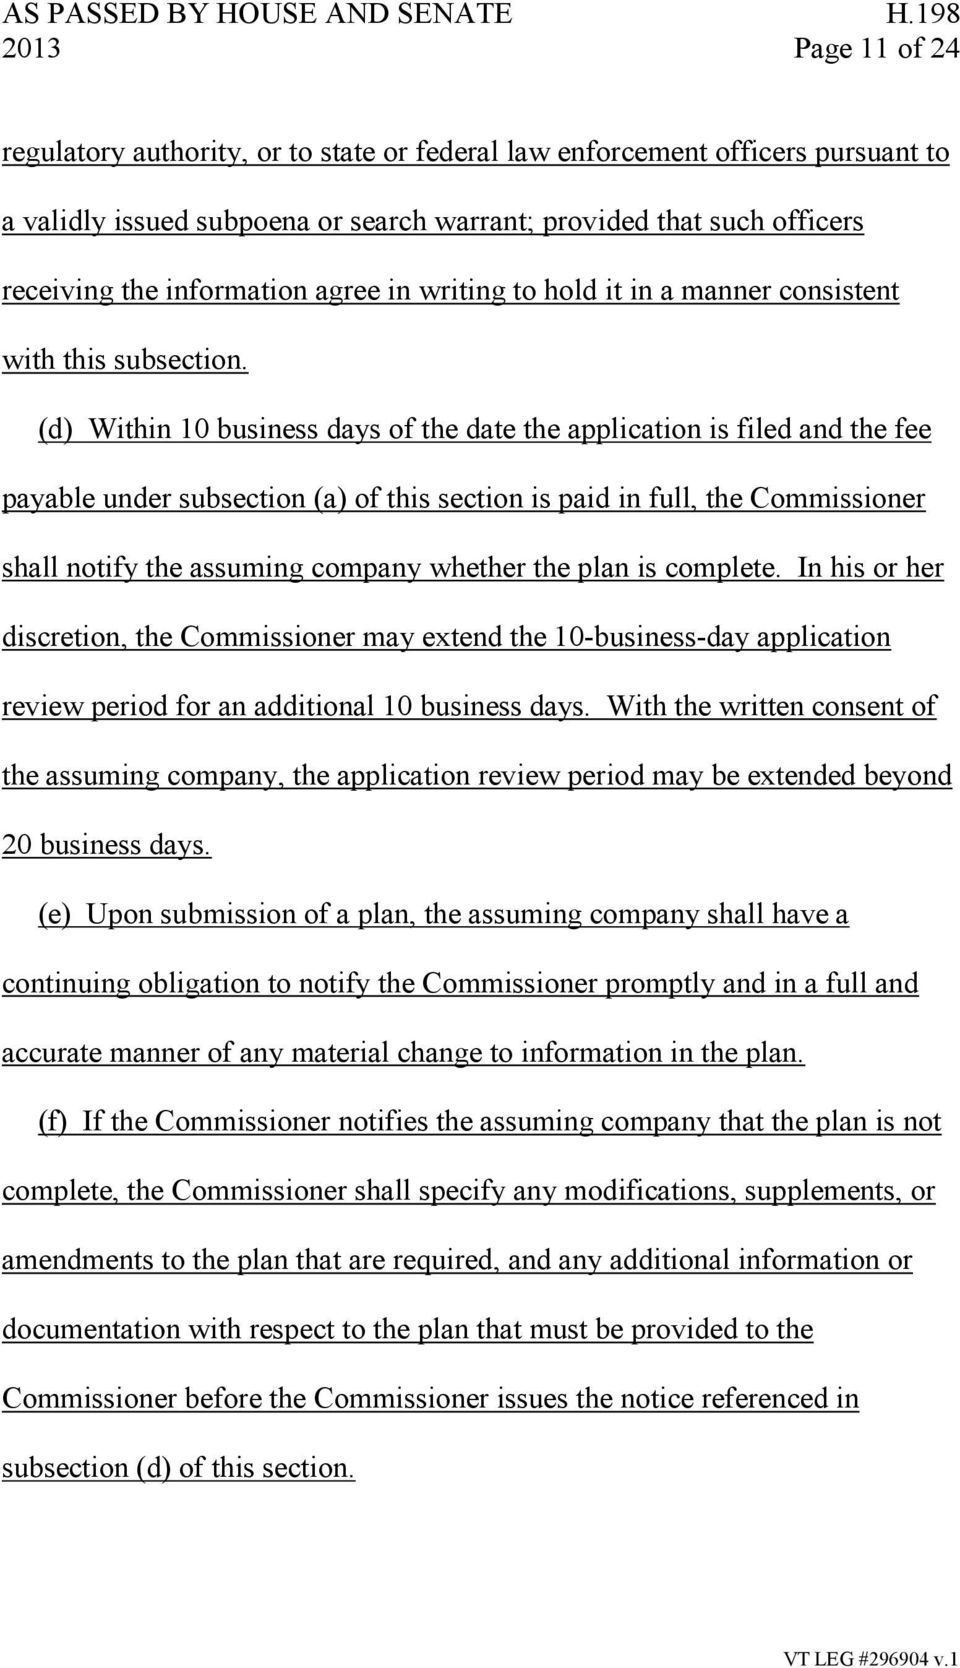 (d) Within 10 business days of the date the application is filed and the fee payable under subsection (a) of this section is paid in full, the Commissioner shall notify the assuming company whether